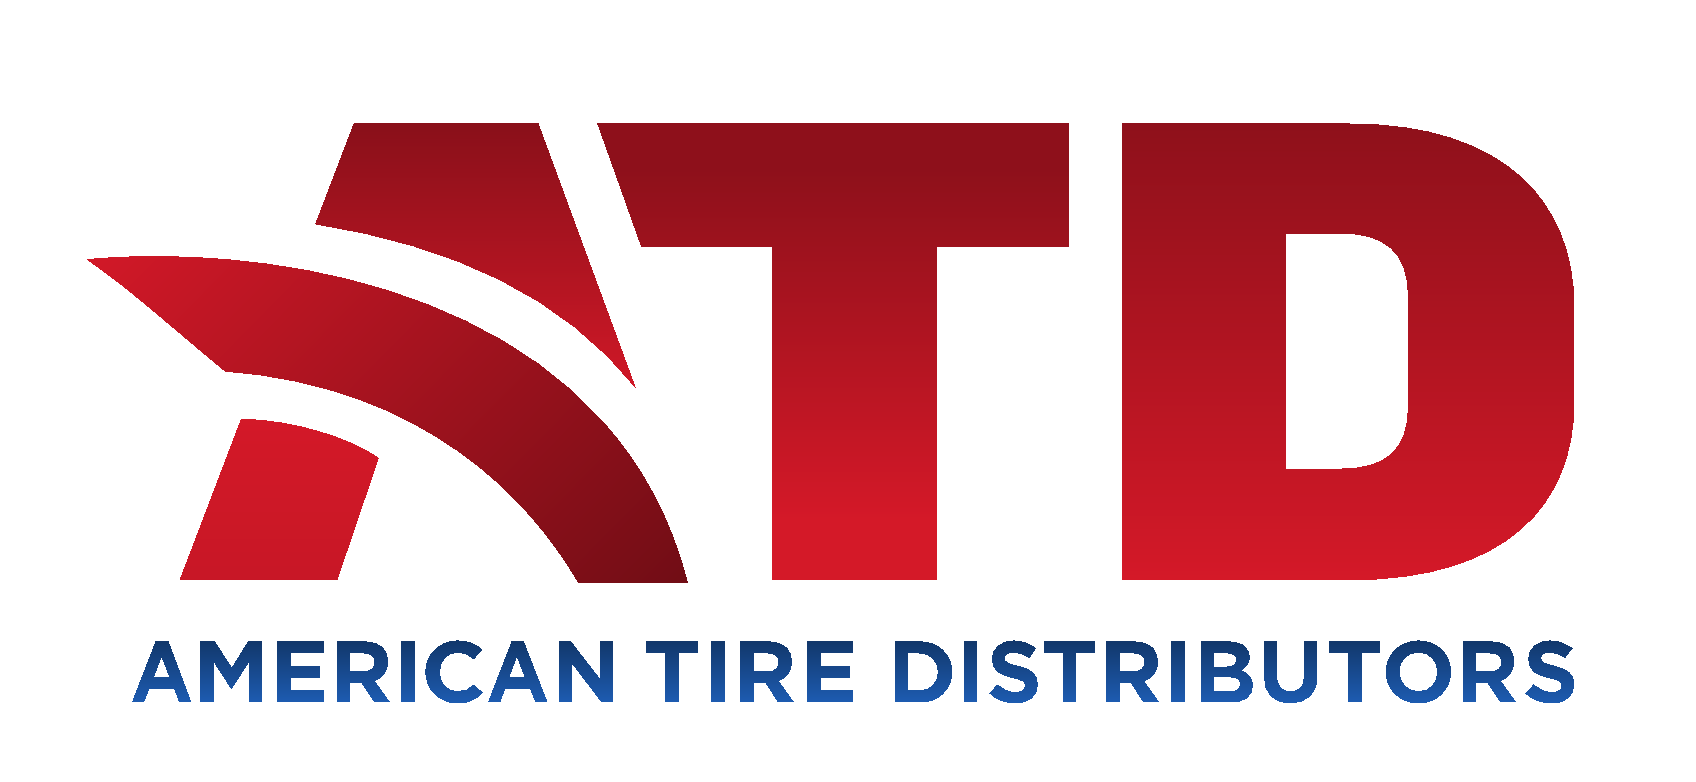 Ameircan Tire Distributors